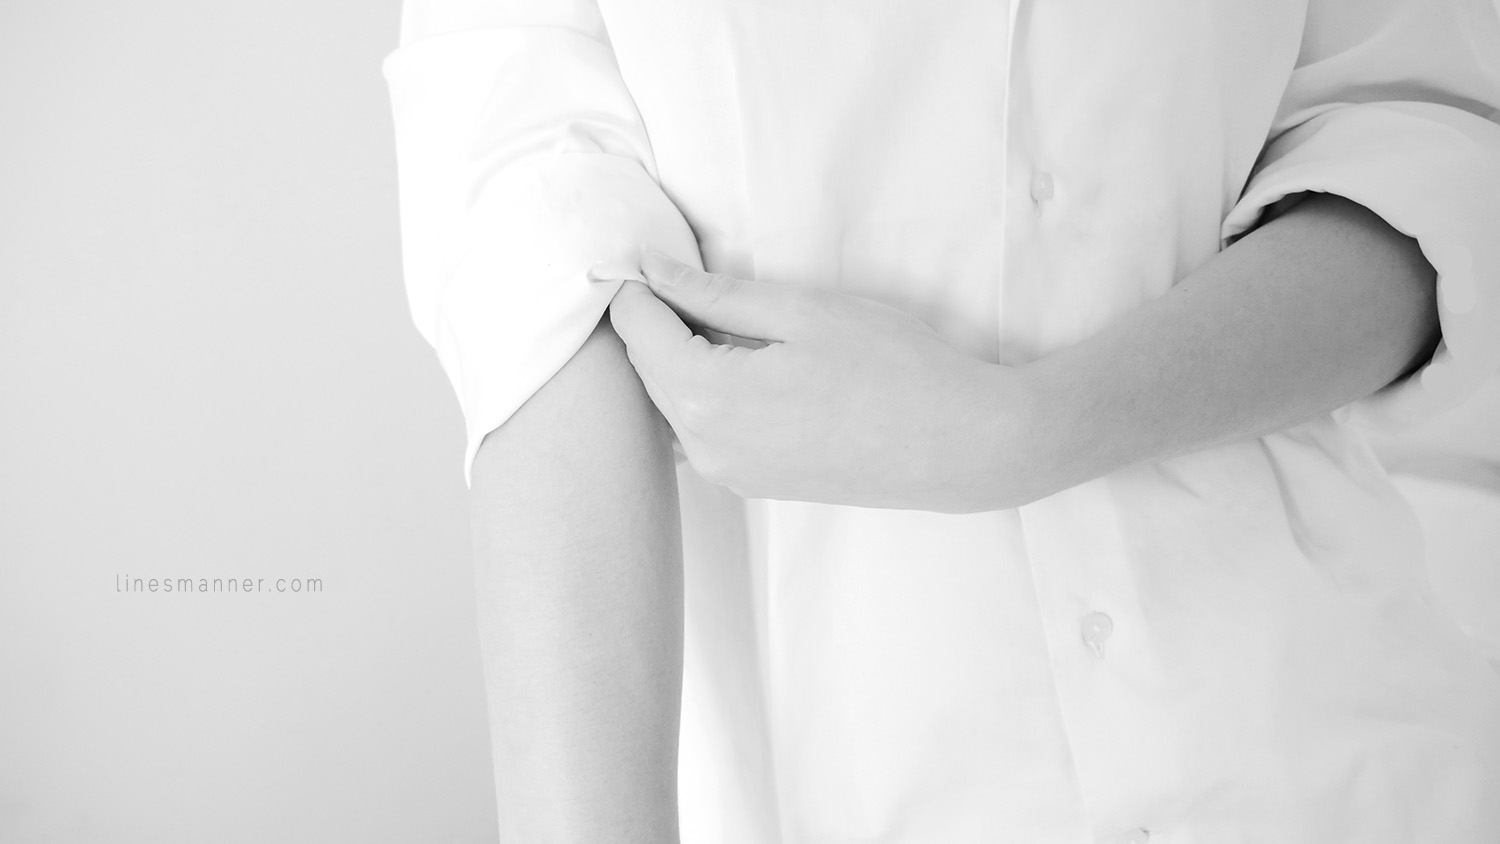 Lines-Manner-Remind-2015-Minimal-Essential-Outfit-Inspiration-Blog-Timeless-Year-Seasons-Details-Travel-Fashion-Versatile-Clean-Sleek-Quality-66